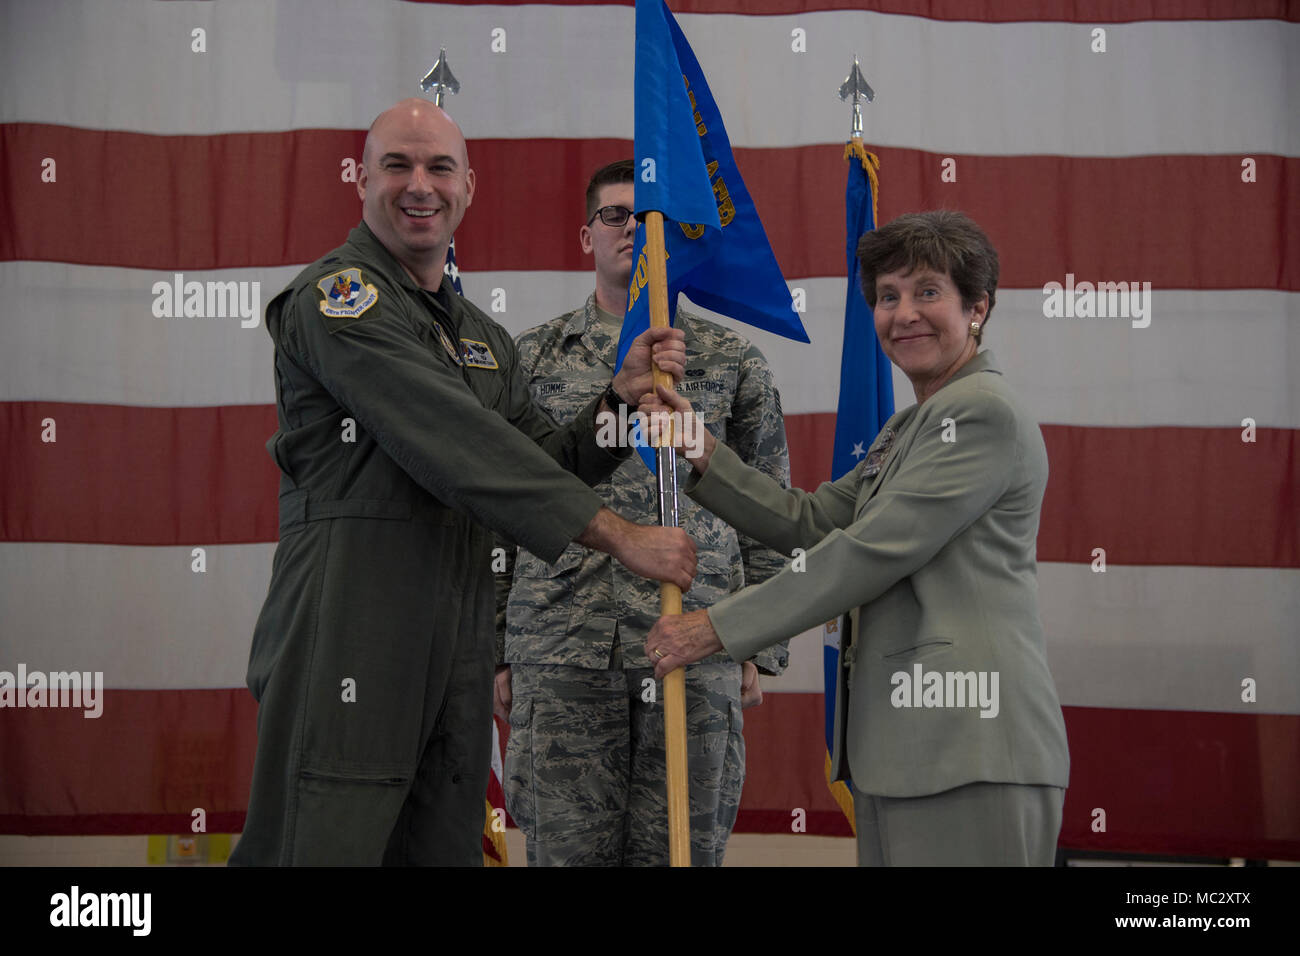 Cindy Pullen, incoming 476th Fighter Group honorary commander, accepts the guidon during an Honorary Commander Change of Command ceremony at Moody Air Force Base, Ga., Jan. 26, 2018. The Honorary Commander Program allows local community leaders to gain awareness of Moody's mission through official and social functions. (U.S. Air Force Photo by Staff Sgt. Olivia Dominique) - Stock Image